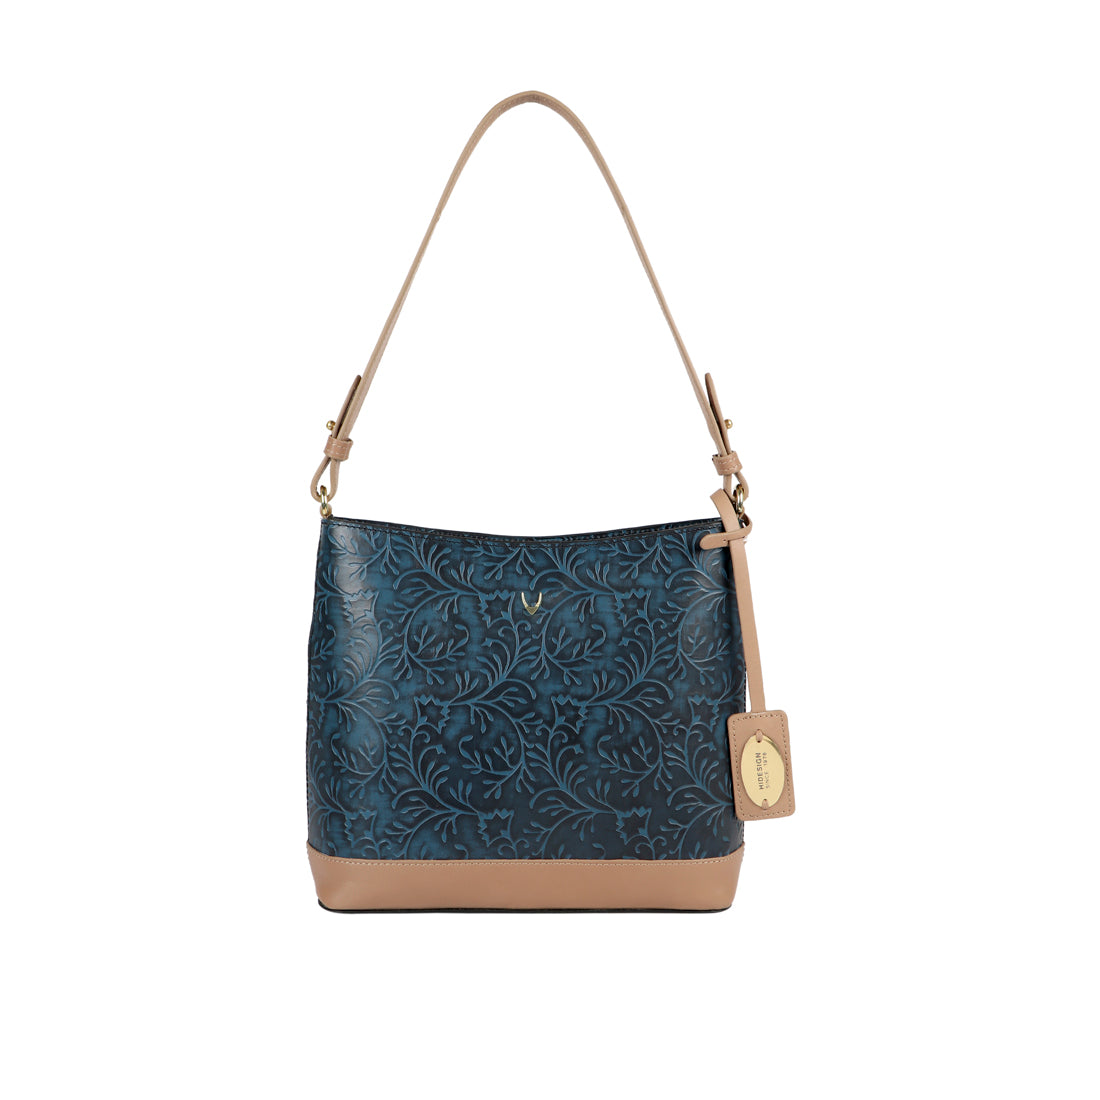 EE ARIES 01 SHOULDER BAG